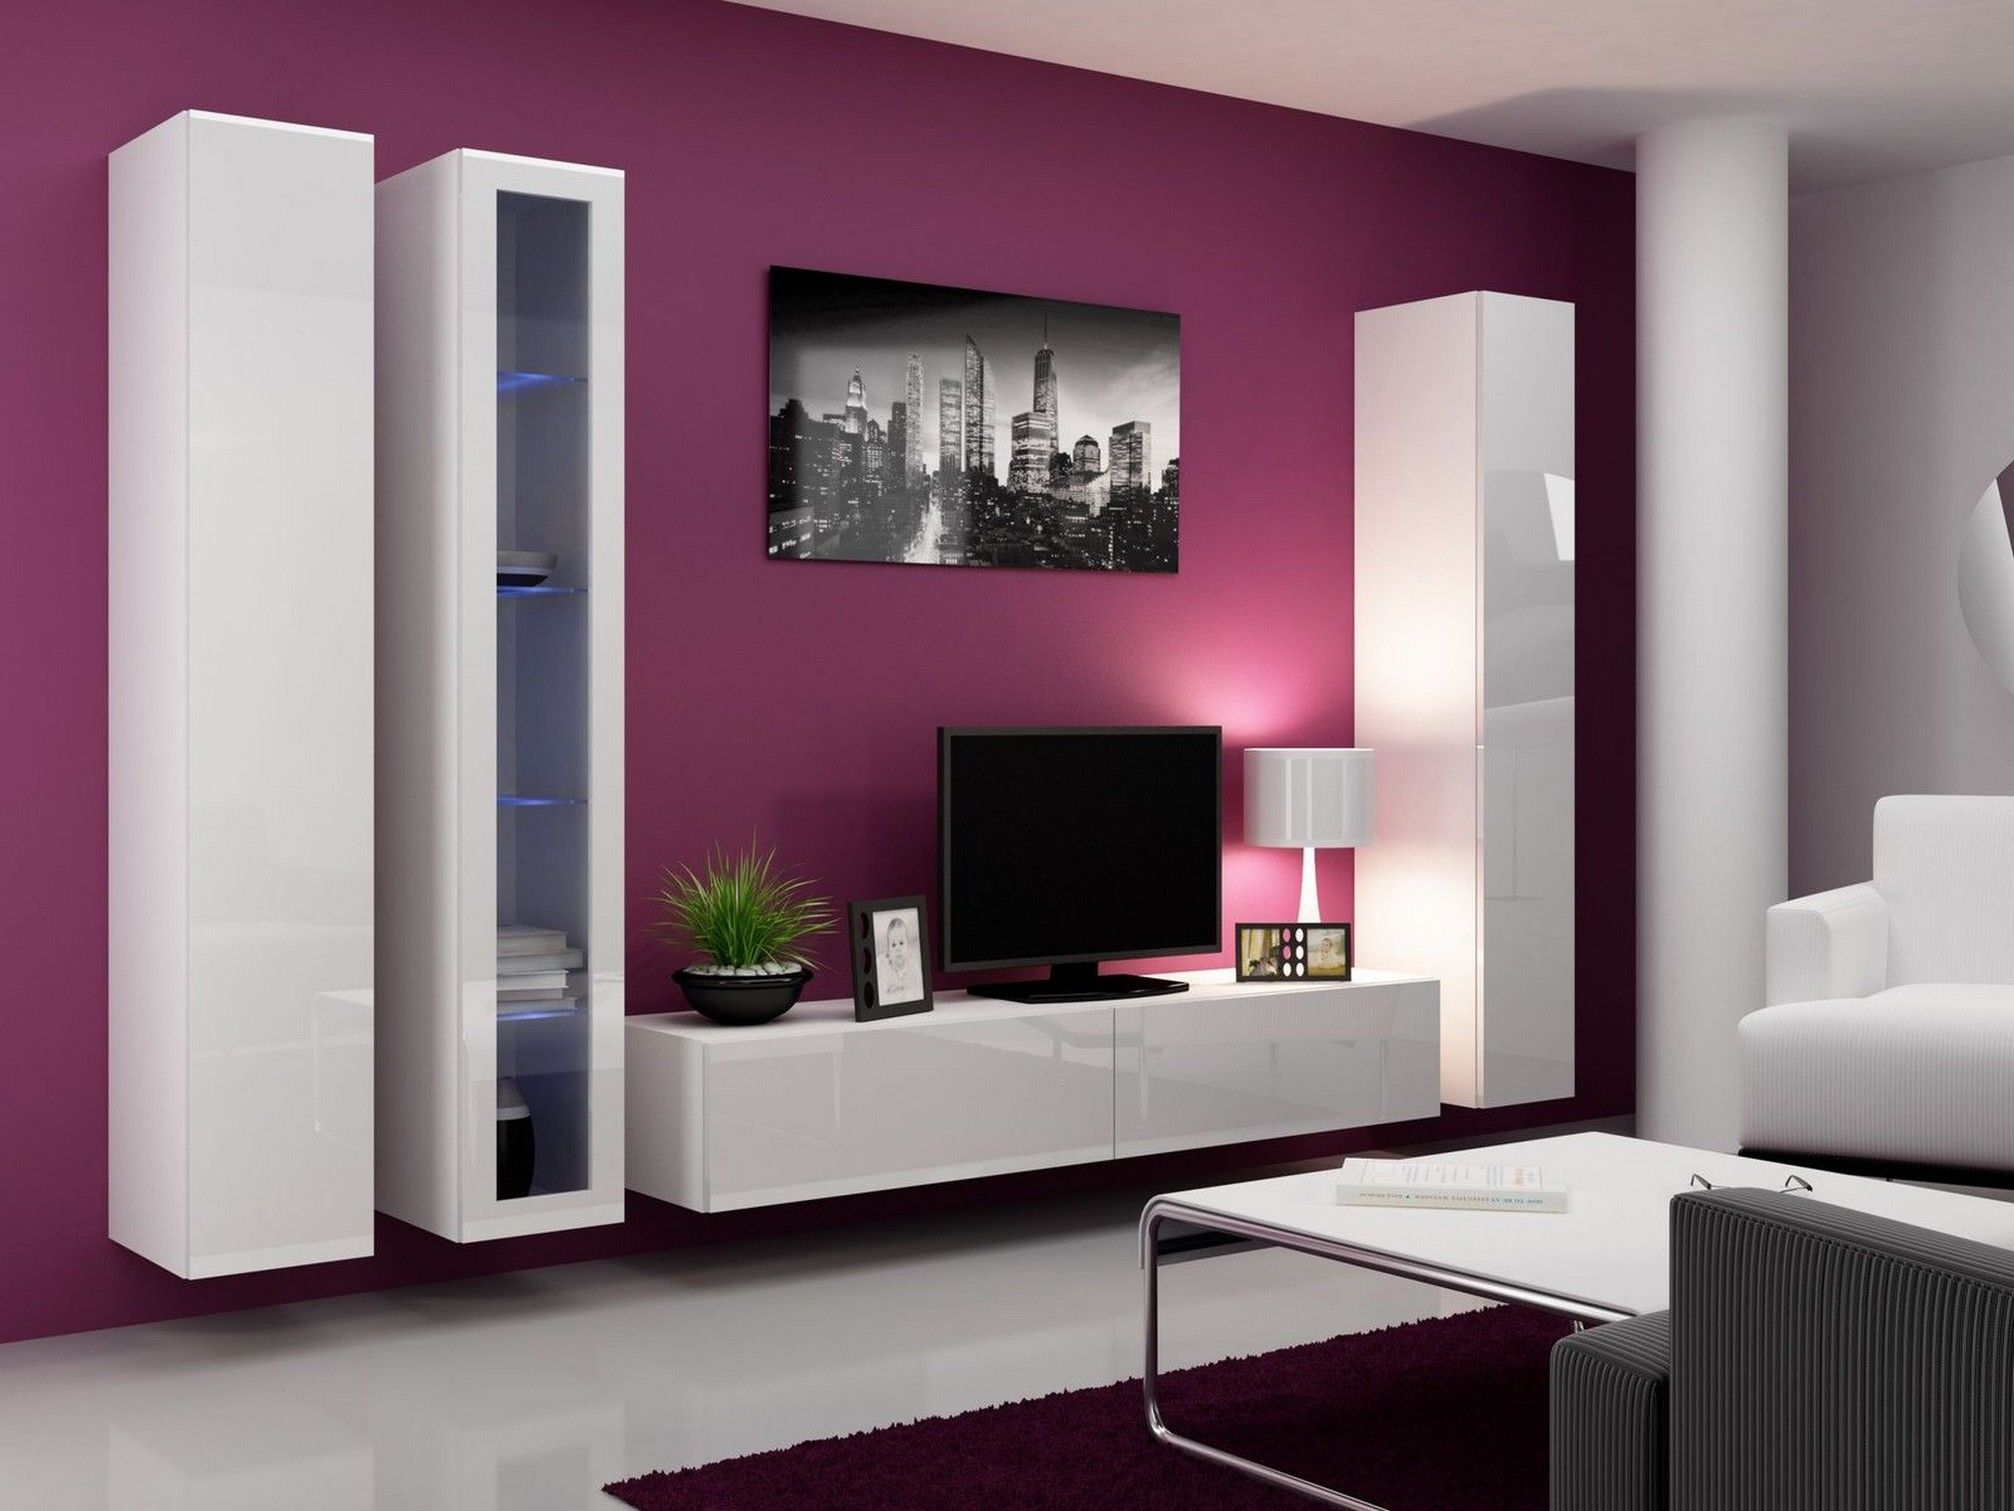 Furniture Design: Pink Color Schemes Ideas For Living Room Unique TV Purple Wall Color Scheme, Bedr… | Living room wall units, Modern tv wall units, Living room tv